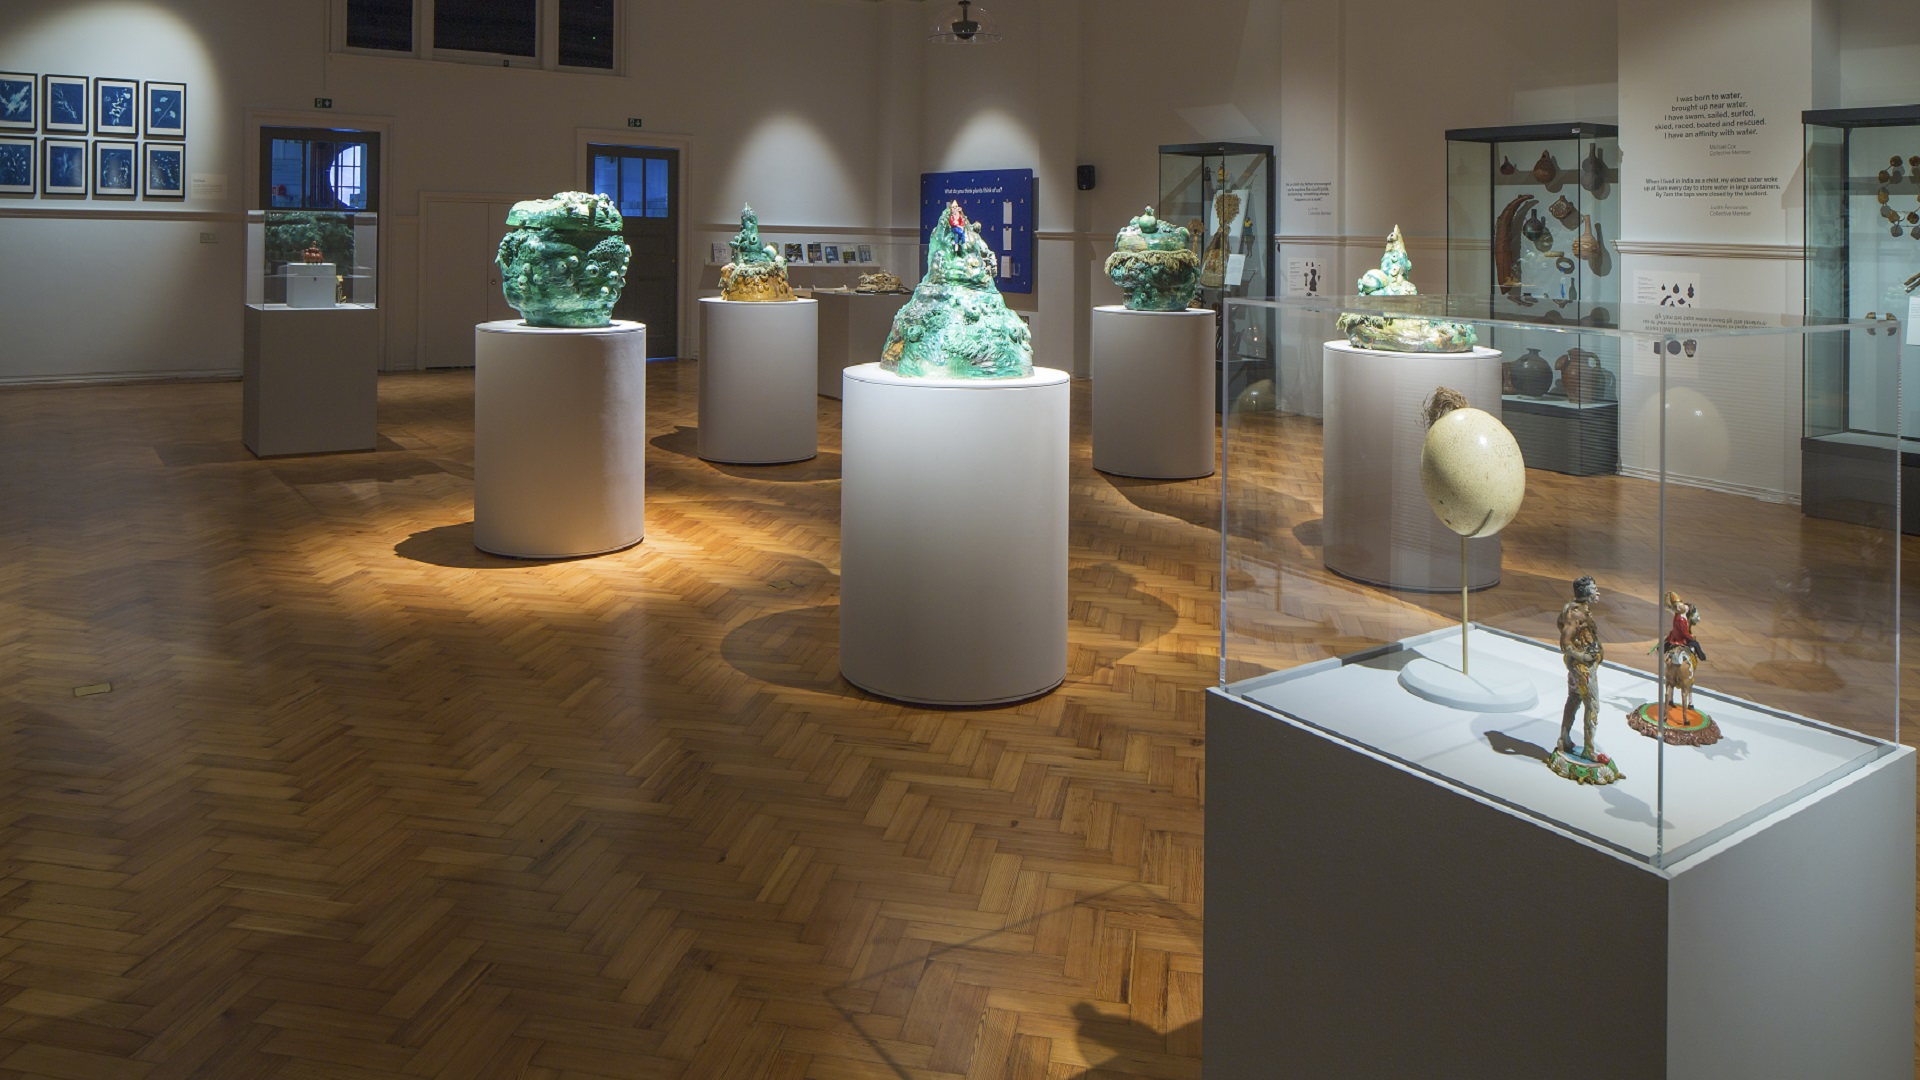 Exhibits at the Horniman Museum as part of the Lore of the Land exhibition